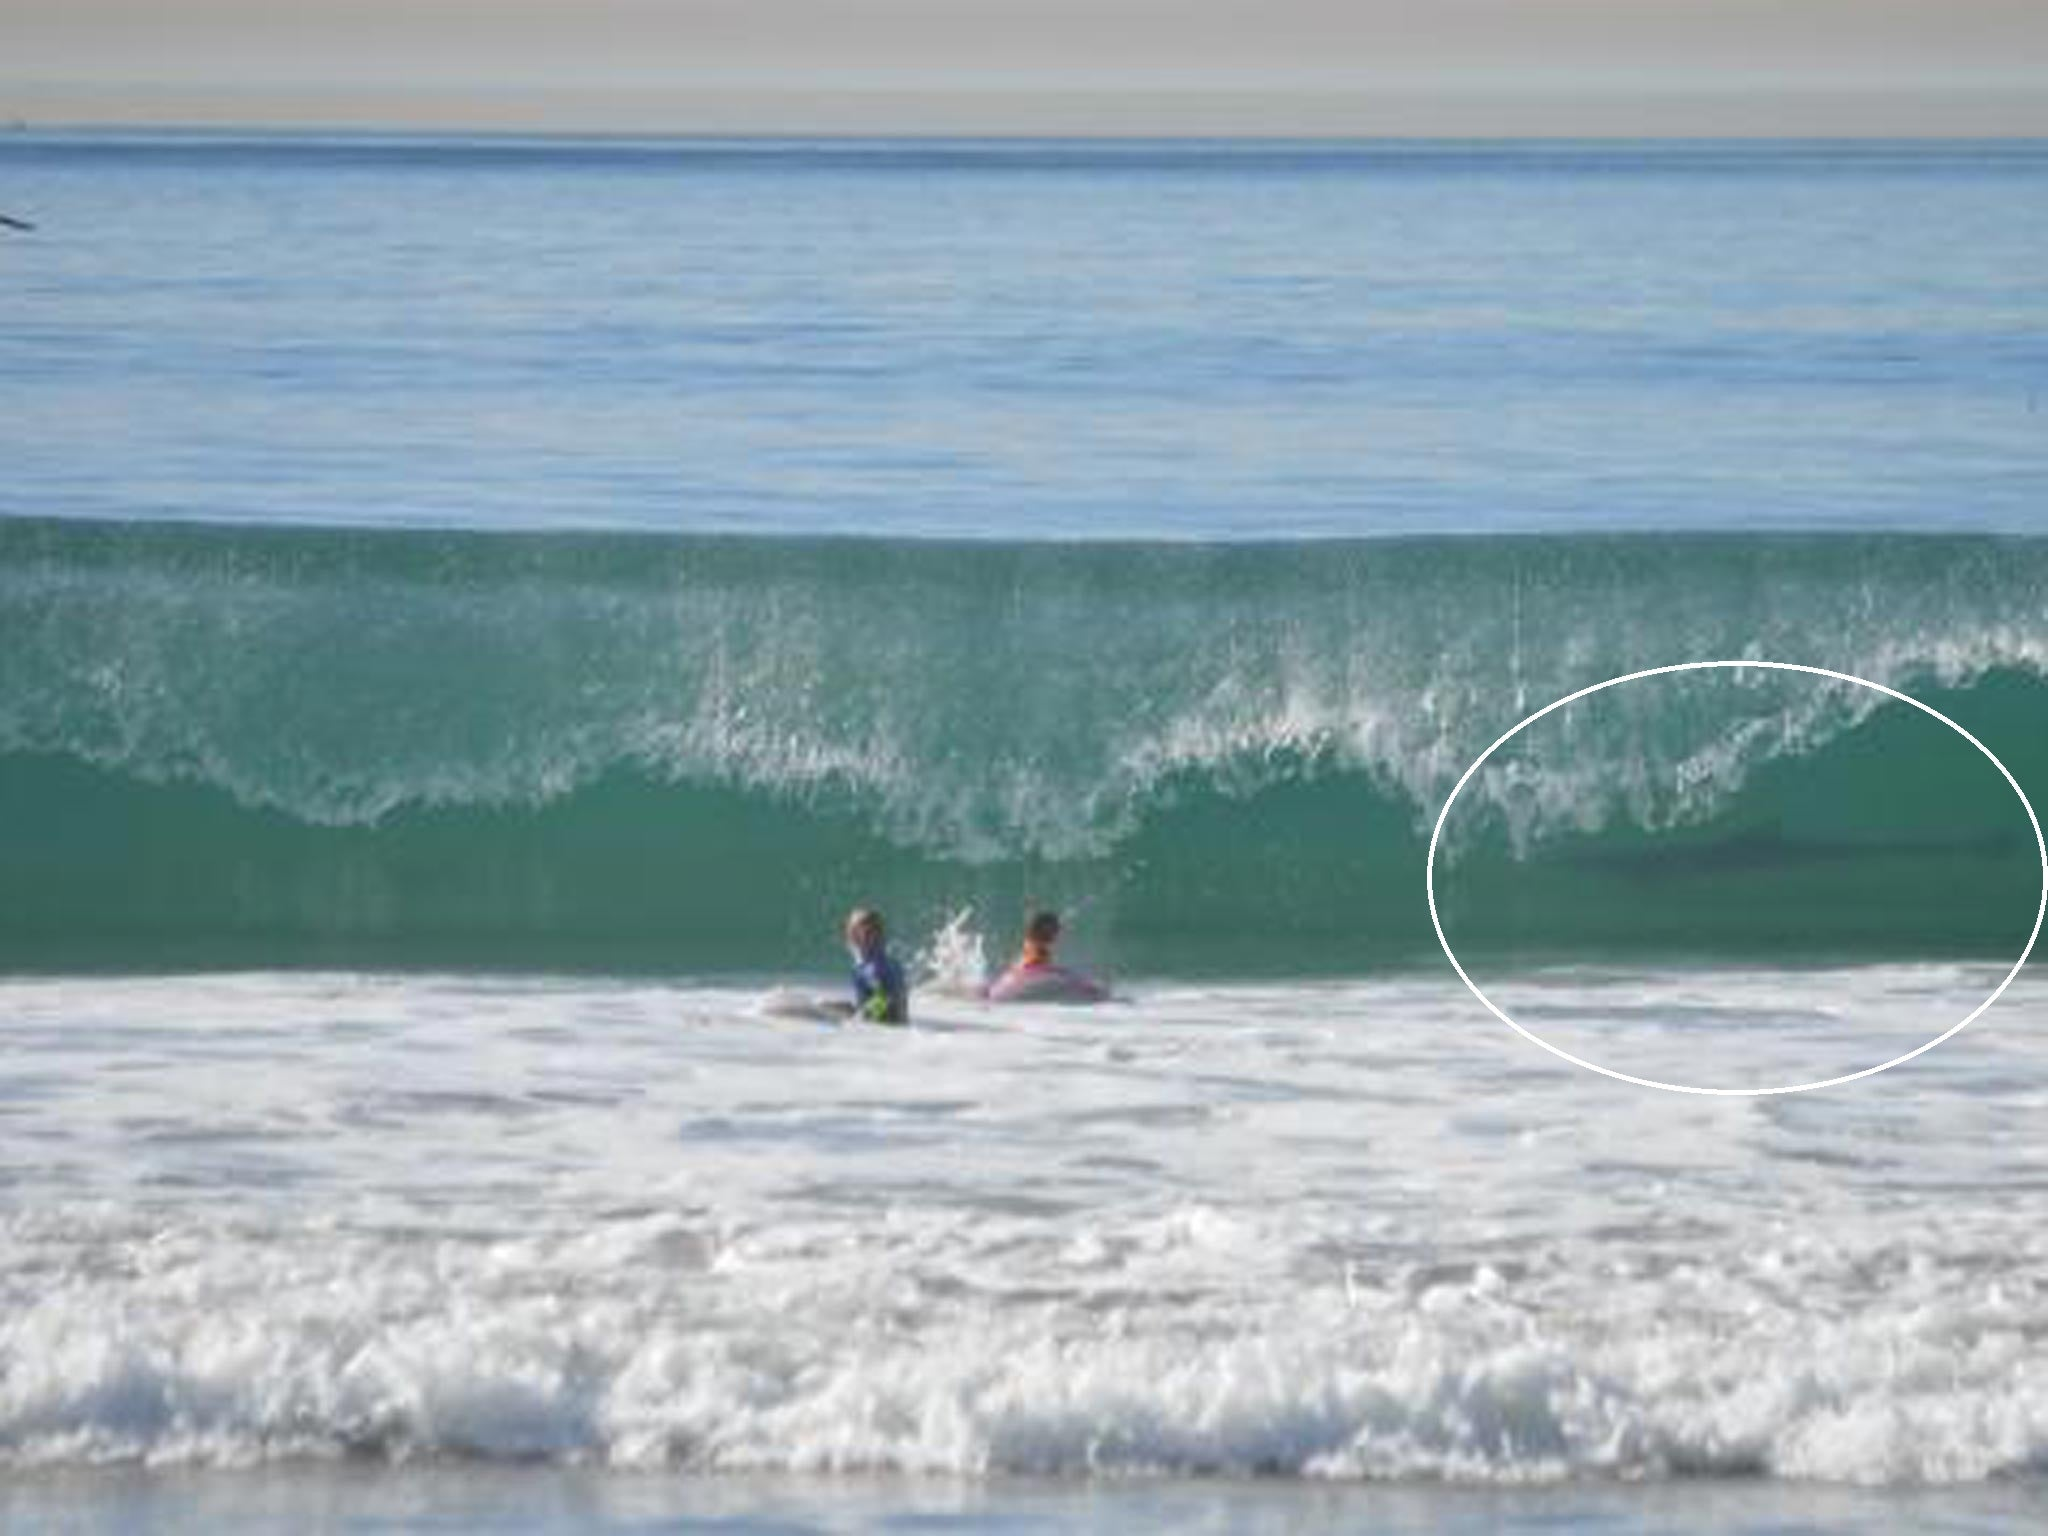 'Great white shark' photobombs two boys surfing in California as mother looks on